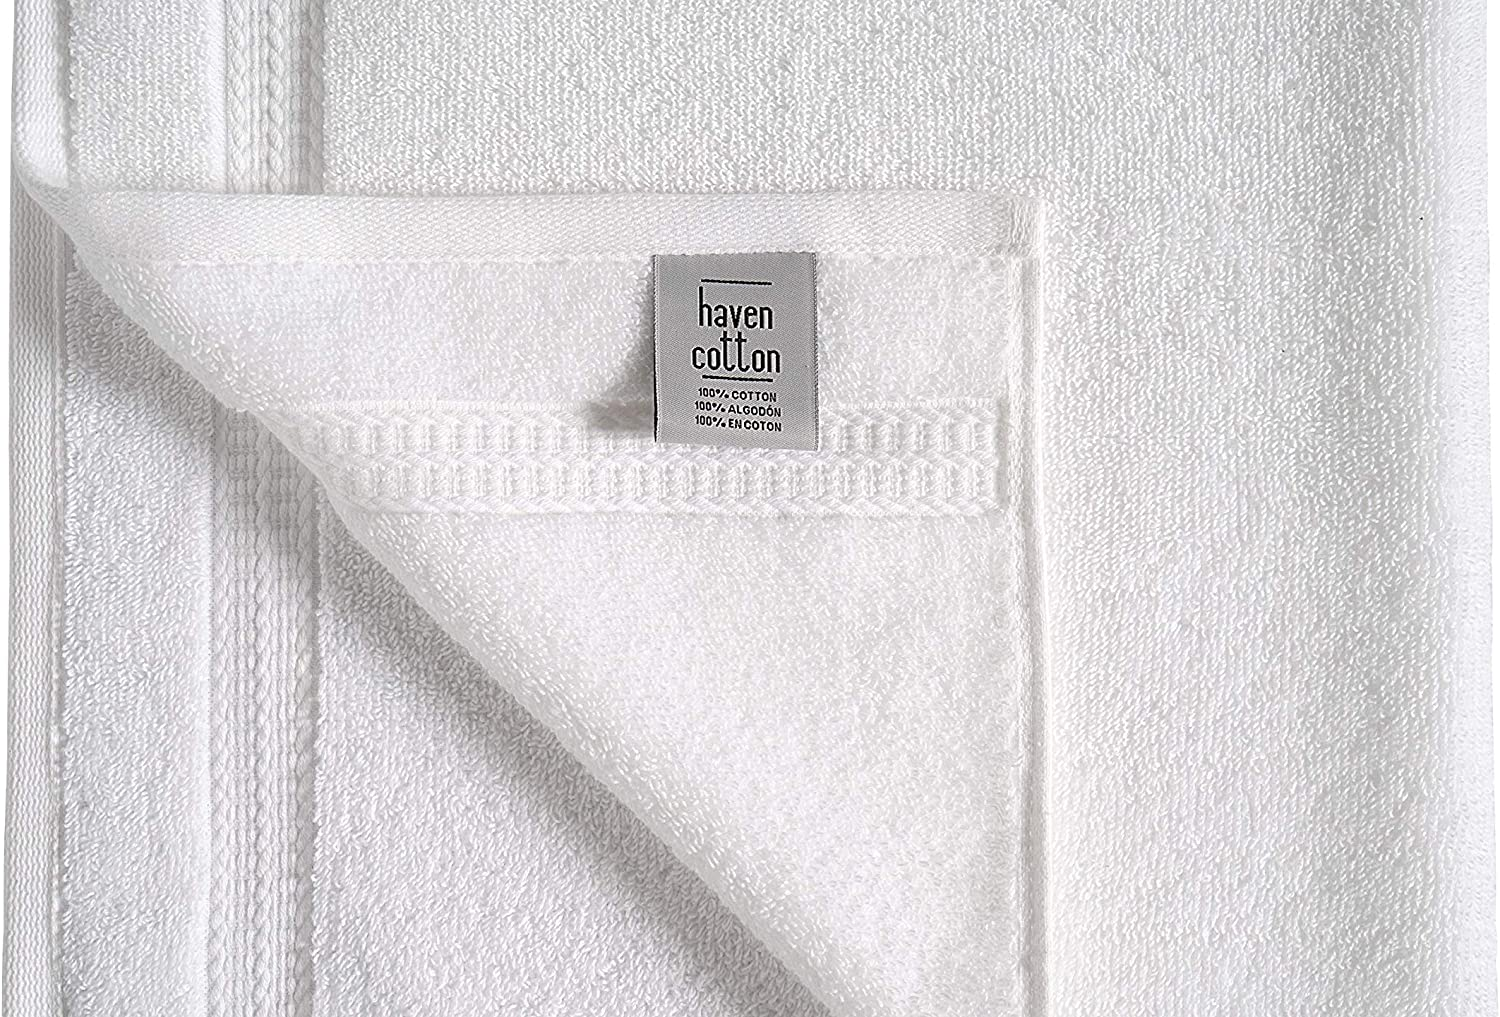 Pack of 12 White 16 x 28 Inches 580 GSM Haven Cotton Cotton Hand Towel Set